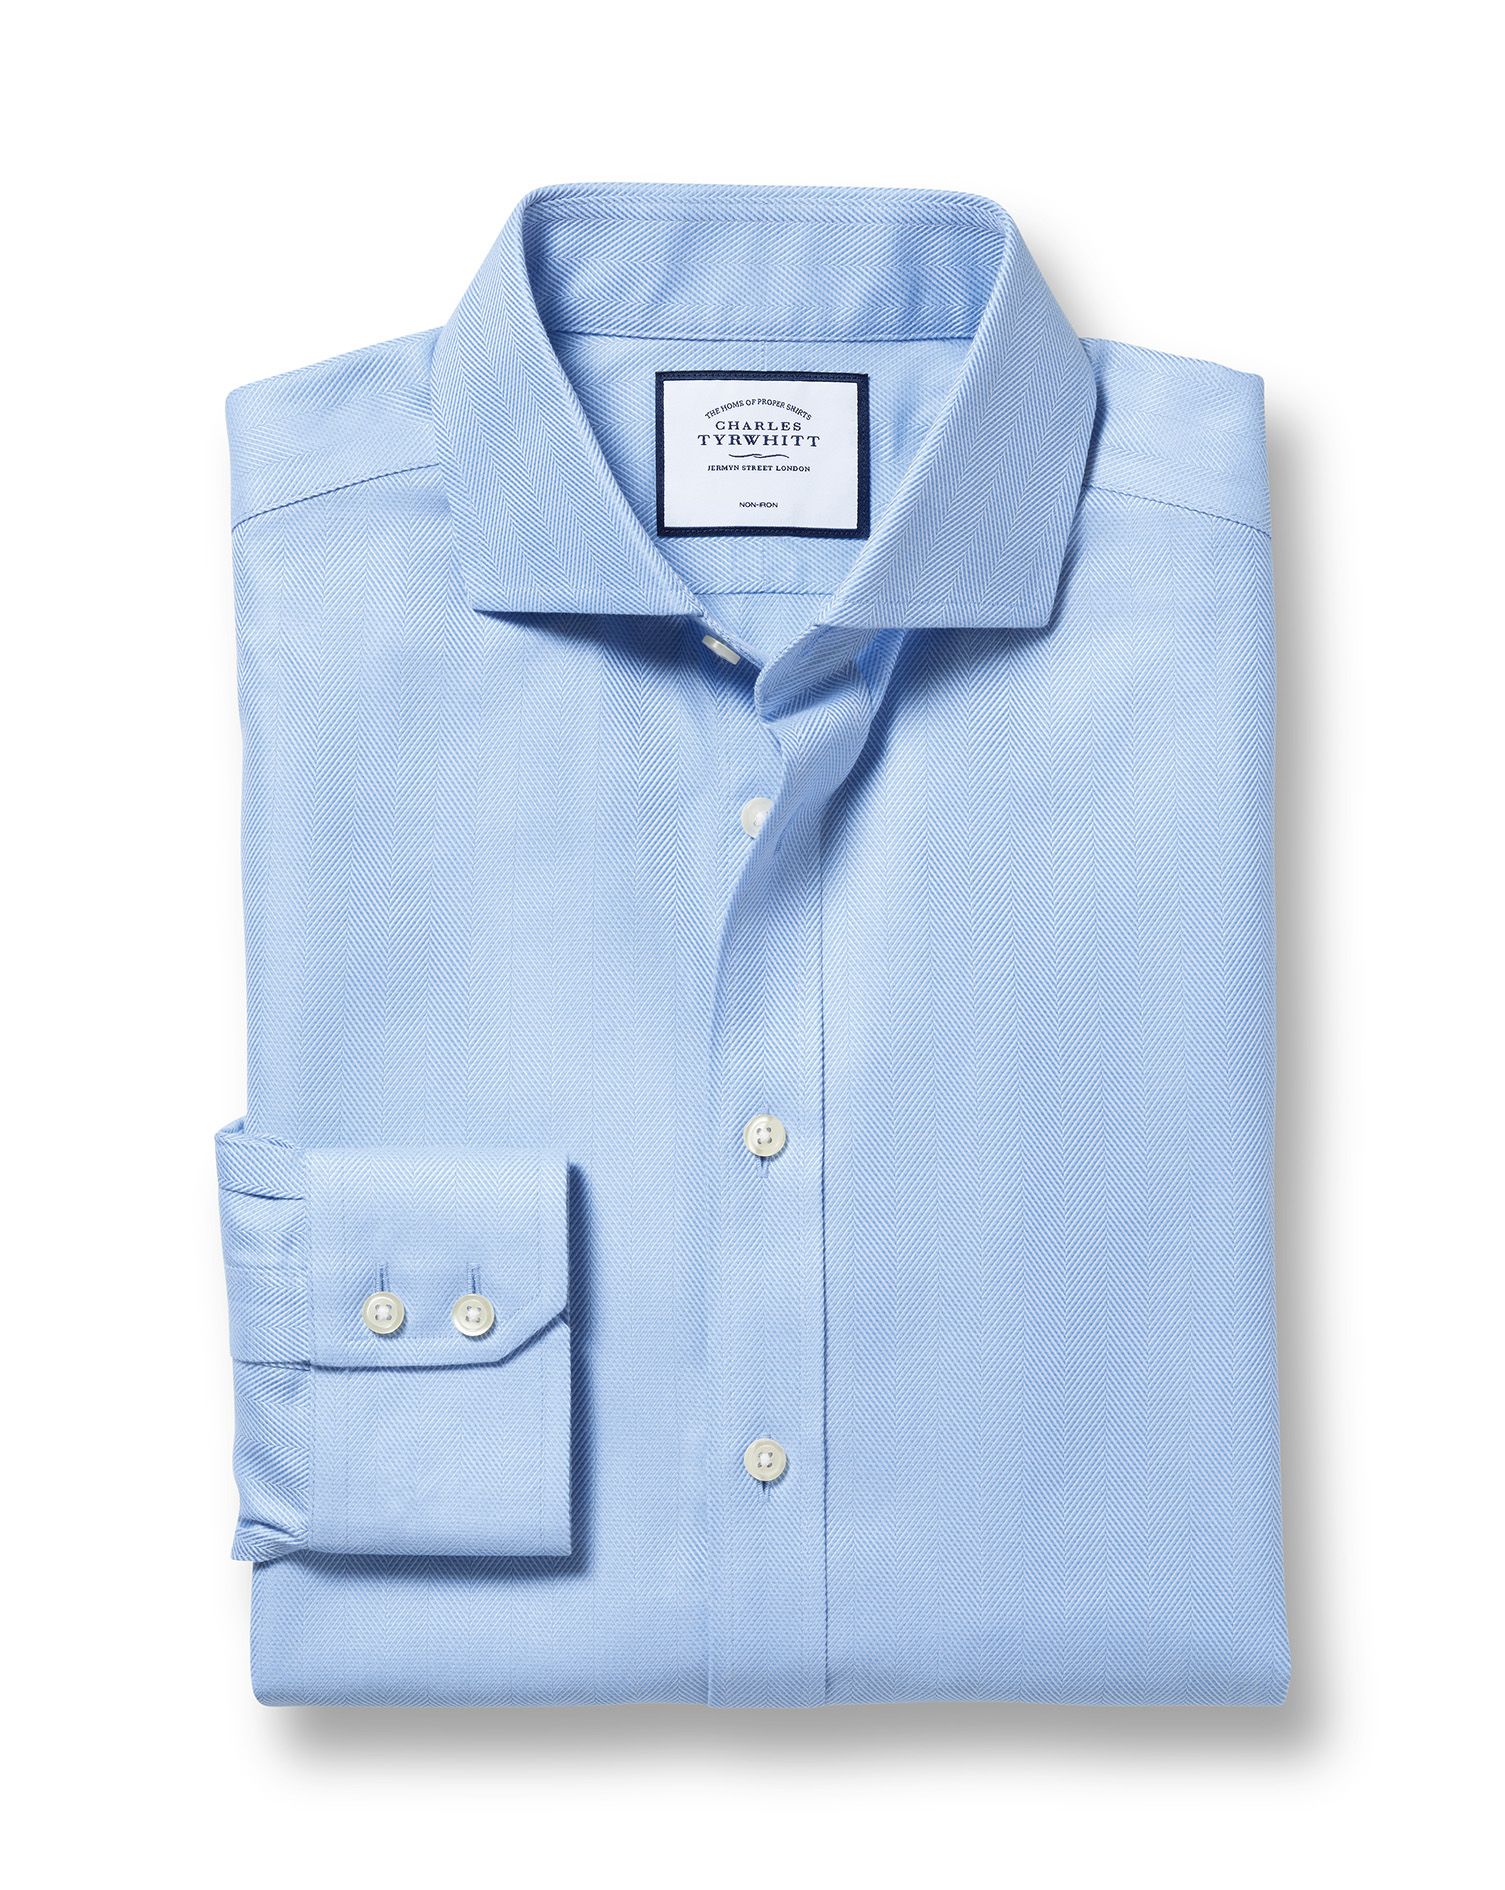 Extra Slim Fit Cutaway Non-Iron Herringbone Sky Blue Cotton Formal Shirt Double Cuff Size 15.5/34 by